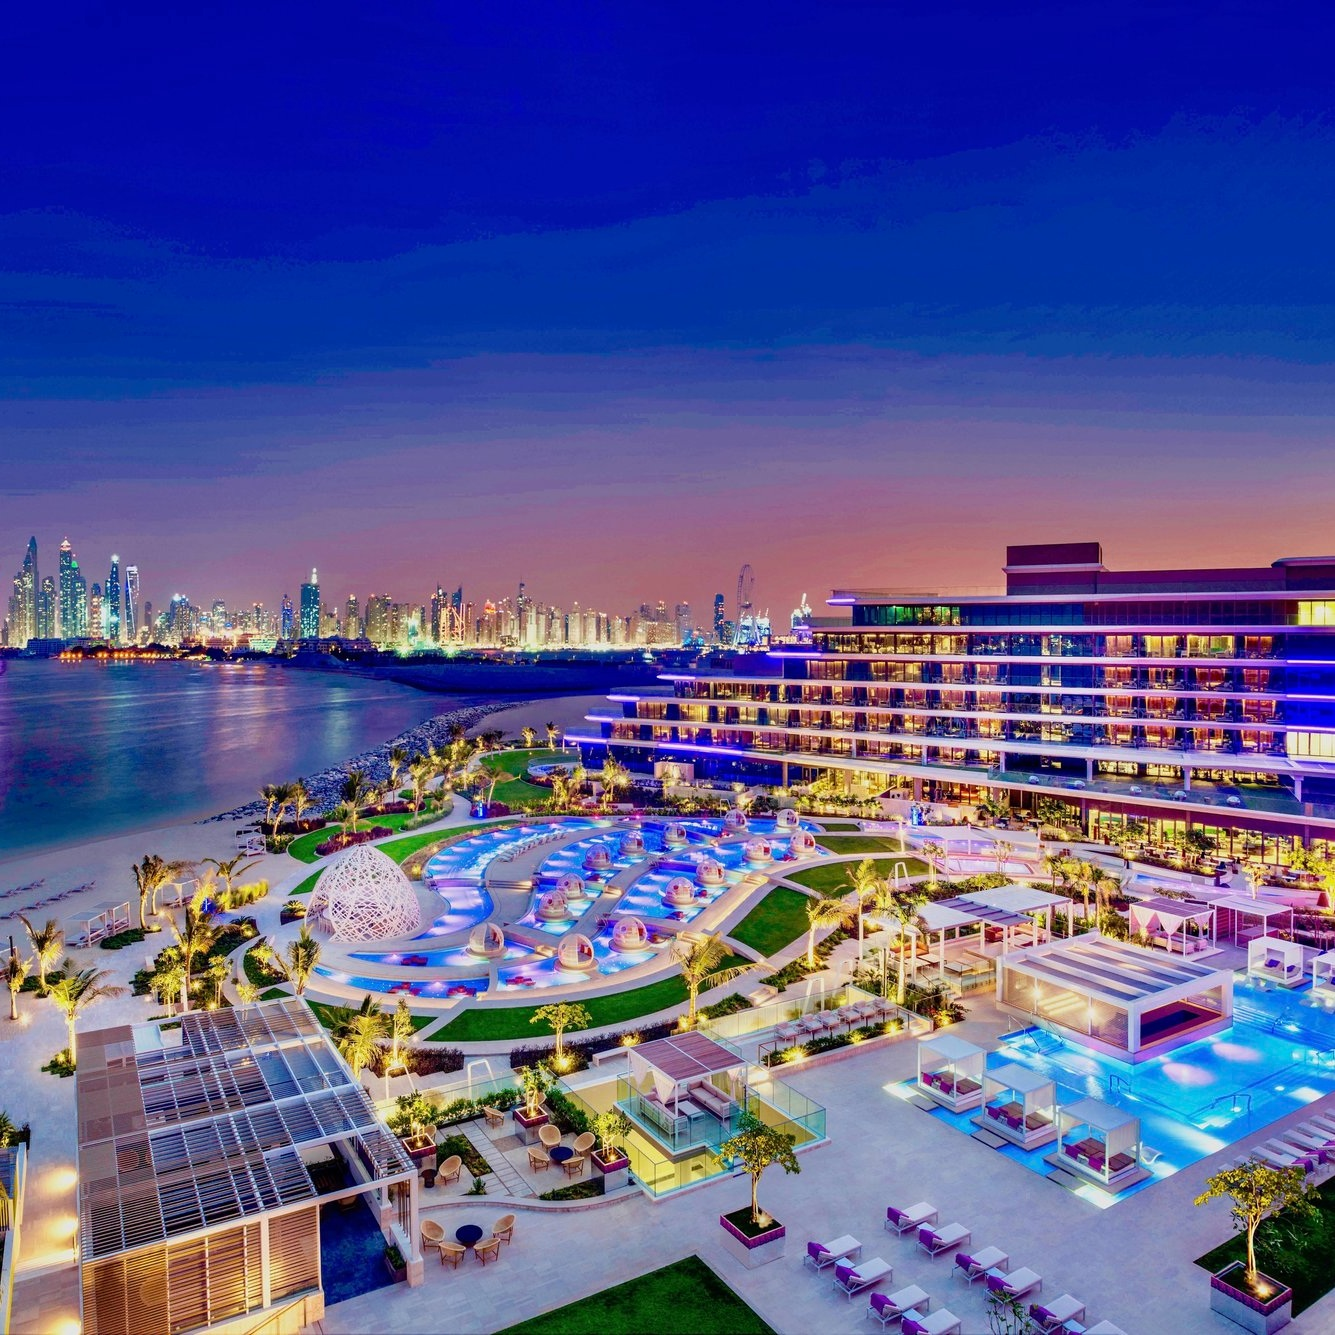 Designs On Dubai: The W Brand Arrives In The Party Capital Of The Middle East - FORBES: The desert just got hotter. The Arabian desert, to be exact—spurred by the arrival of the latest haute hotel chain to make a splash in Dubai, also known as the nightlife authority in the Middle East; a land where Chanel is advertised on highway billboards and you can swim with sharks in the mall.(1 July 2019)